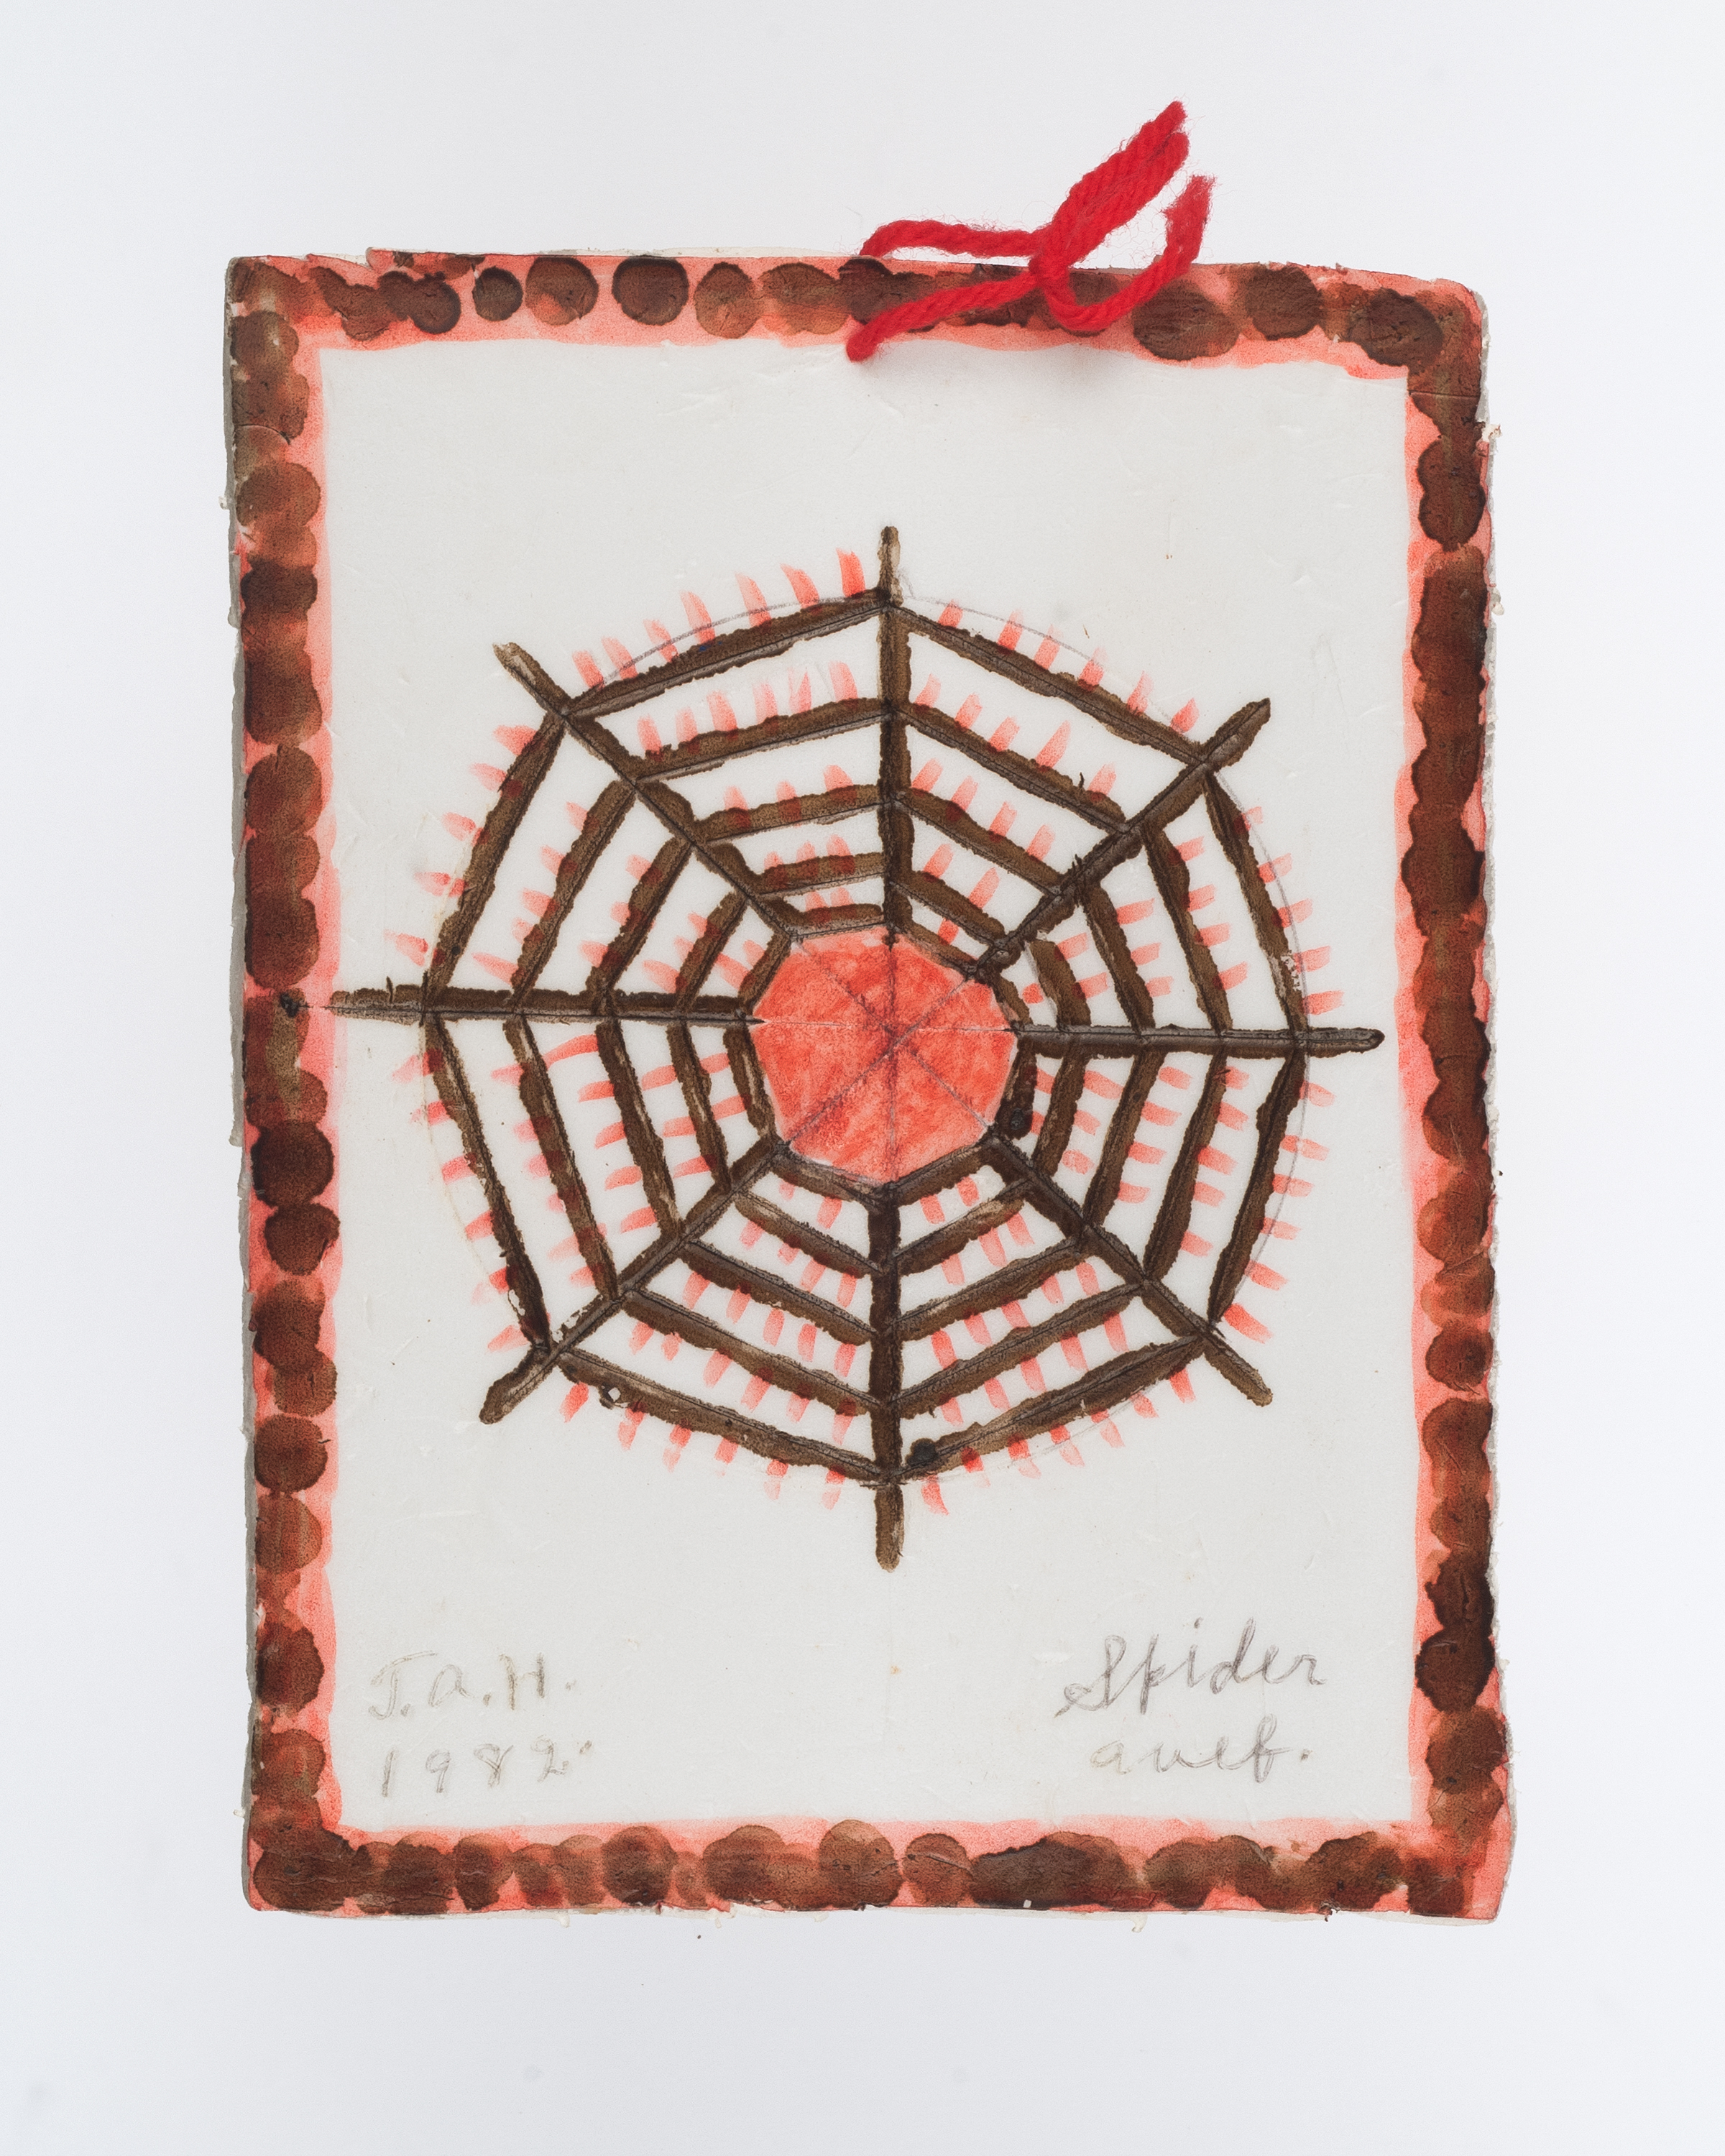 T.A. Hay,  Spider Web , 1982. 7 inches (h) x 5 inches (w), red marker and yarn with brown shoe polish on styrofoam tray, signed lower left.